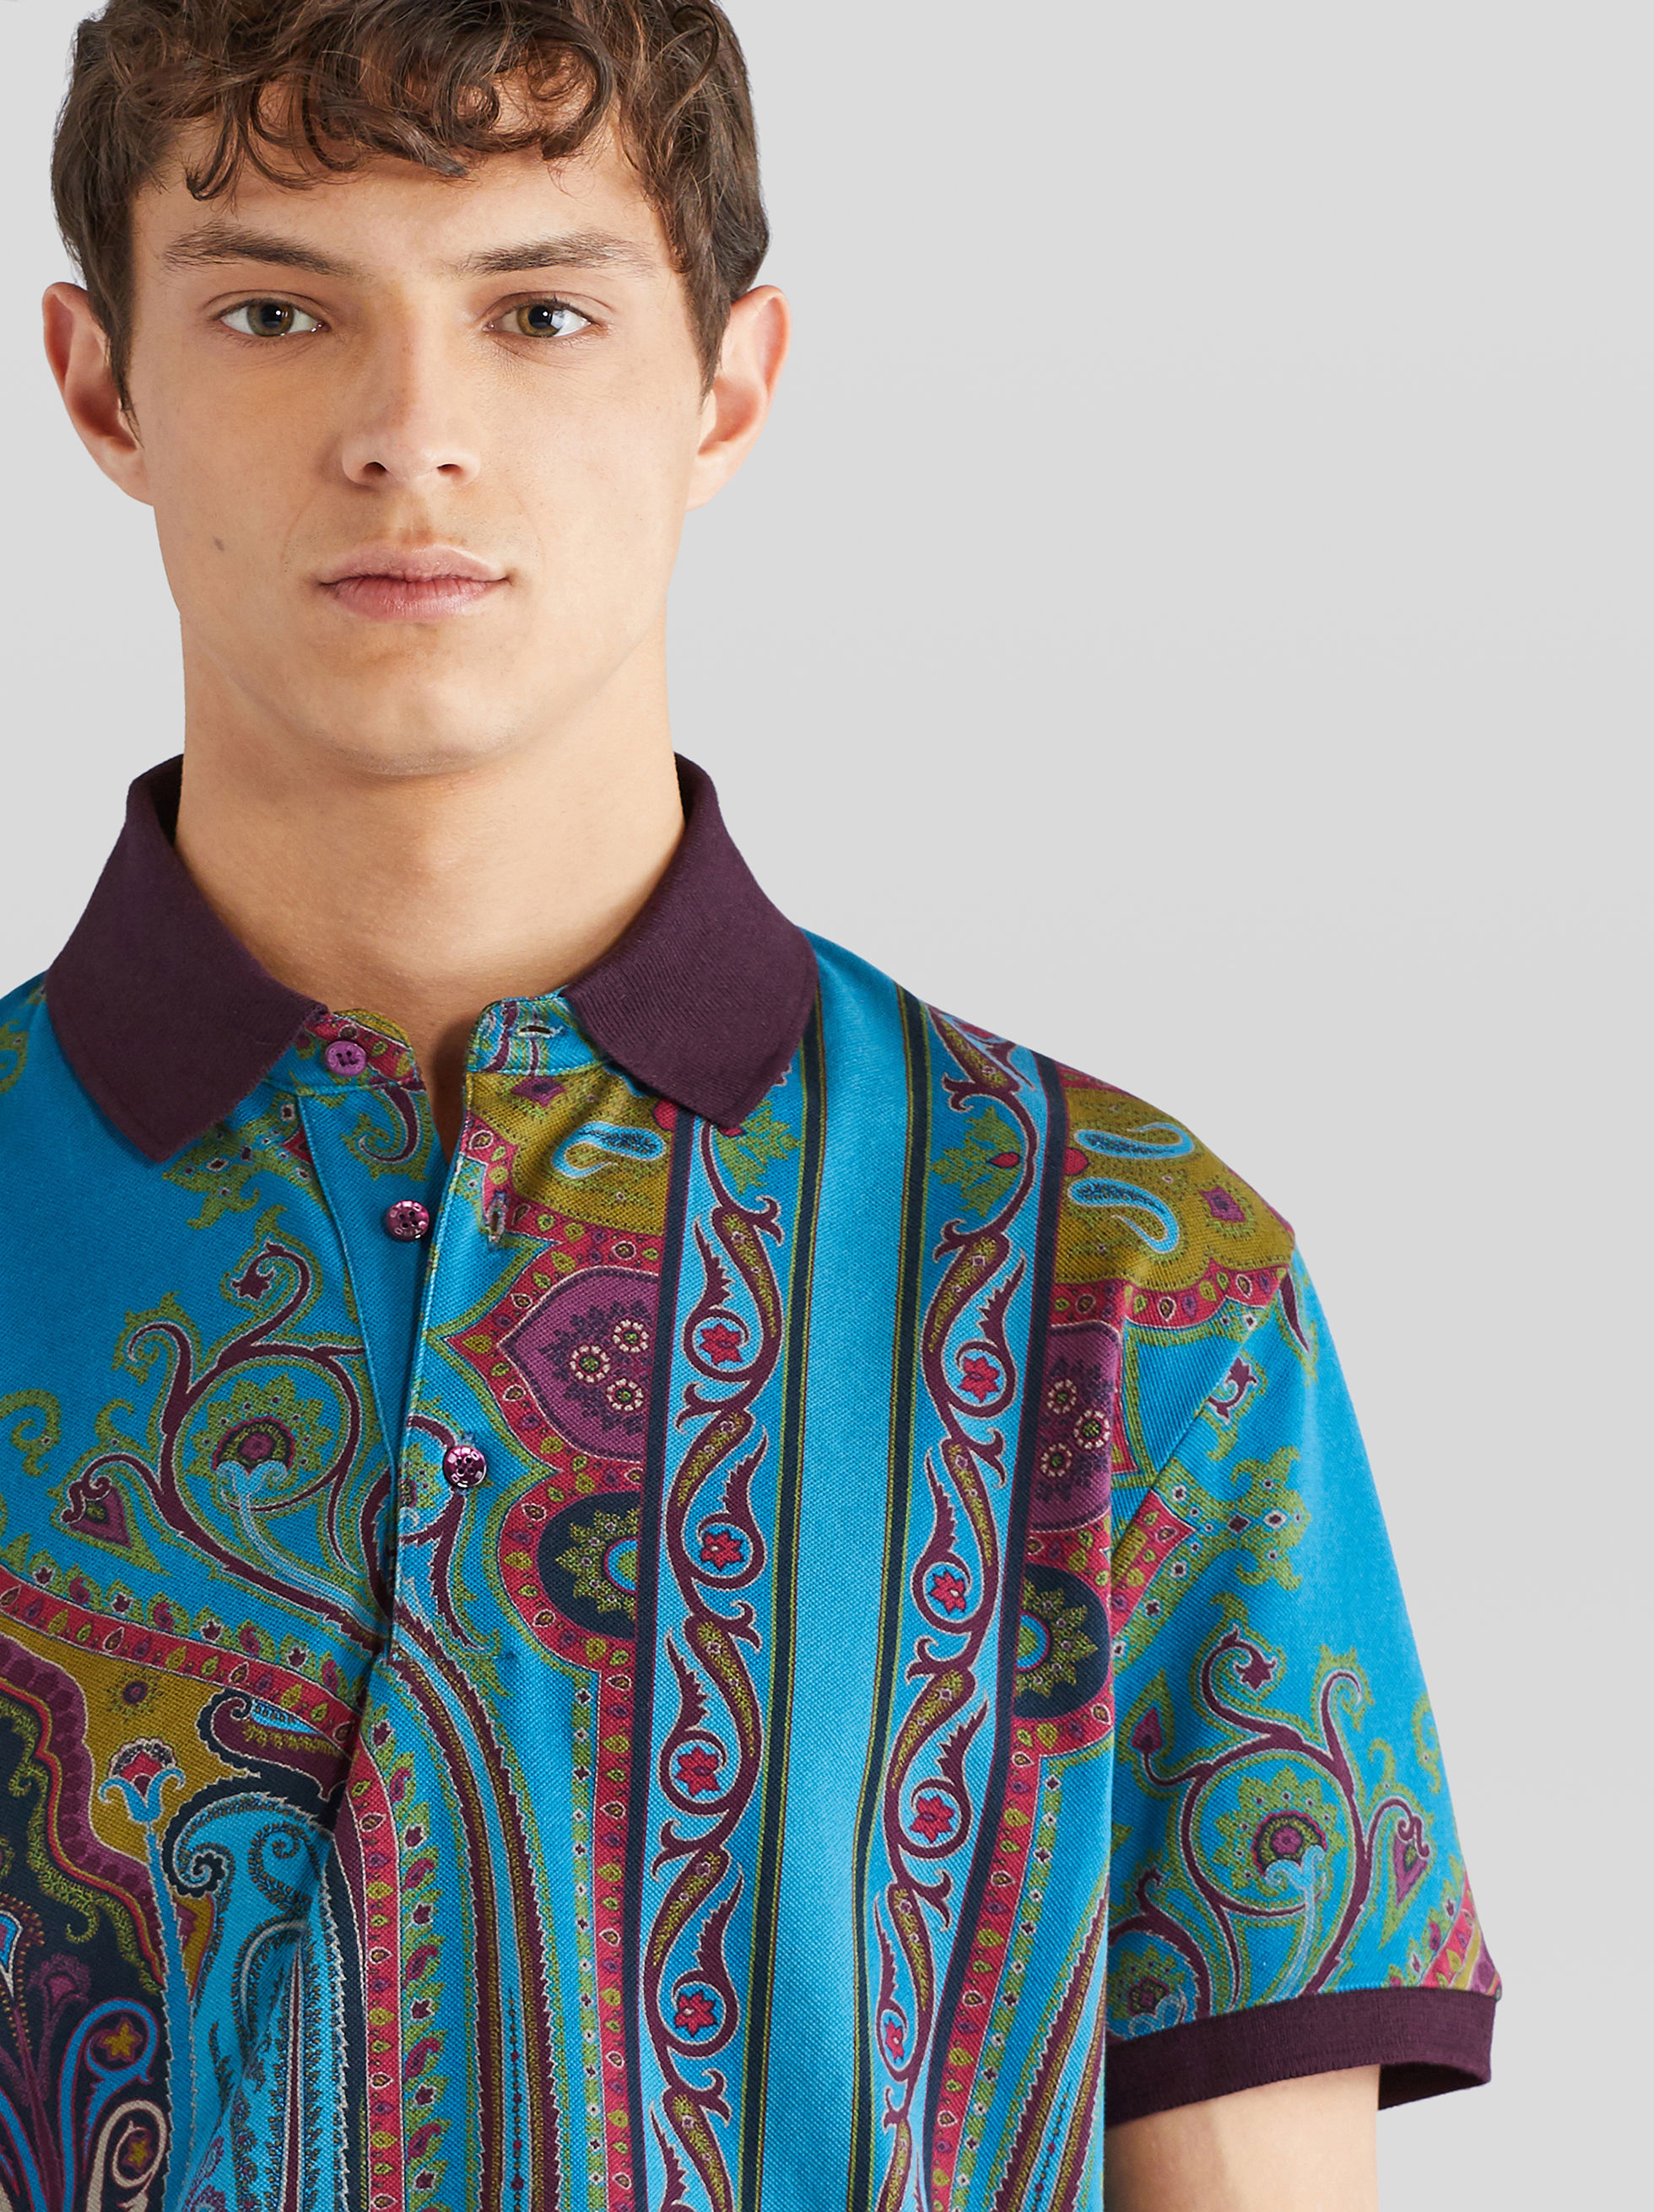 PIQUET POLO SHIRT WITH PAISLEY PATTERNS